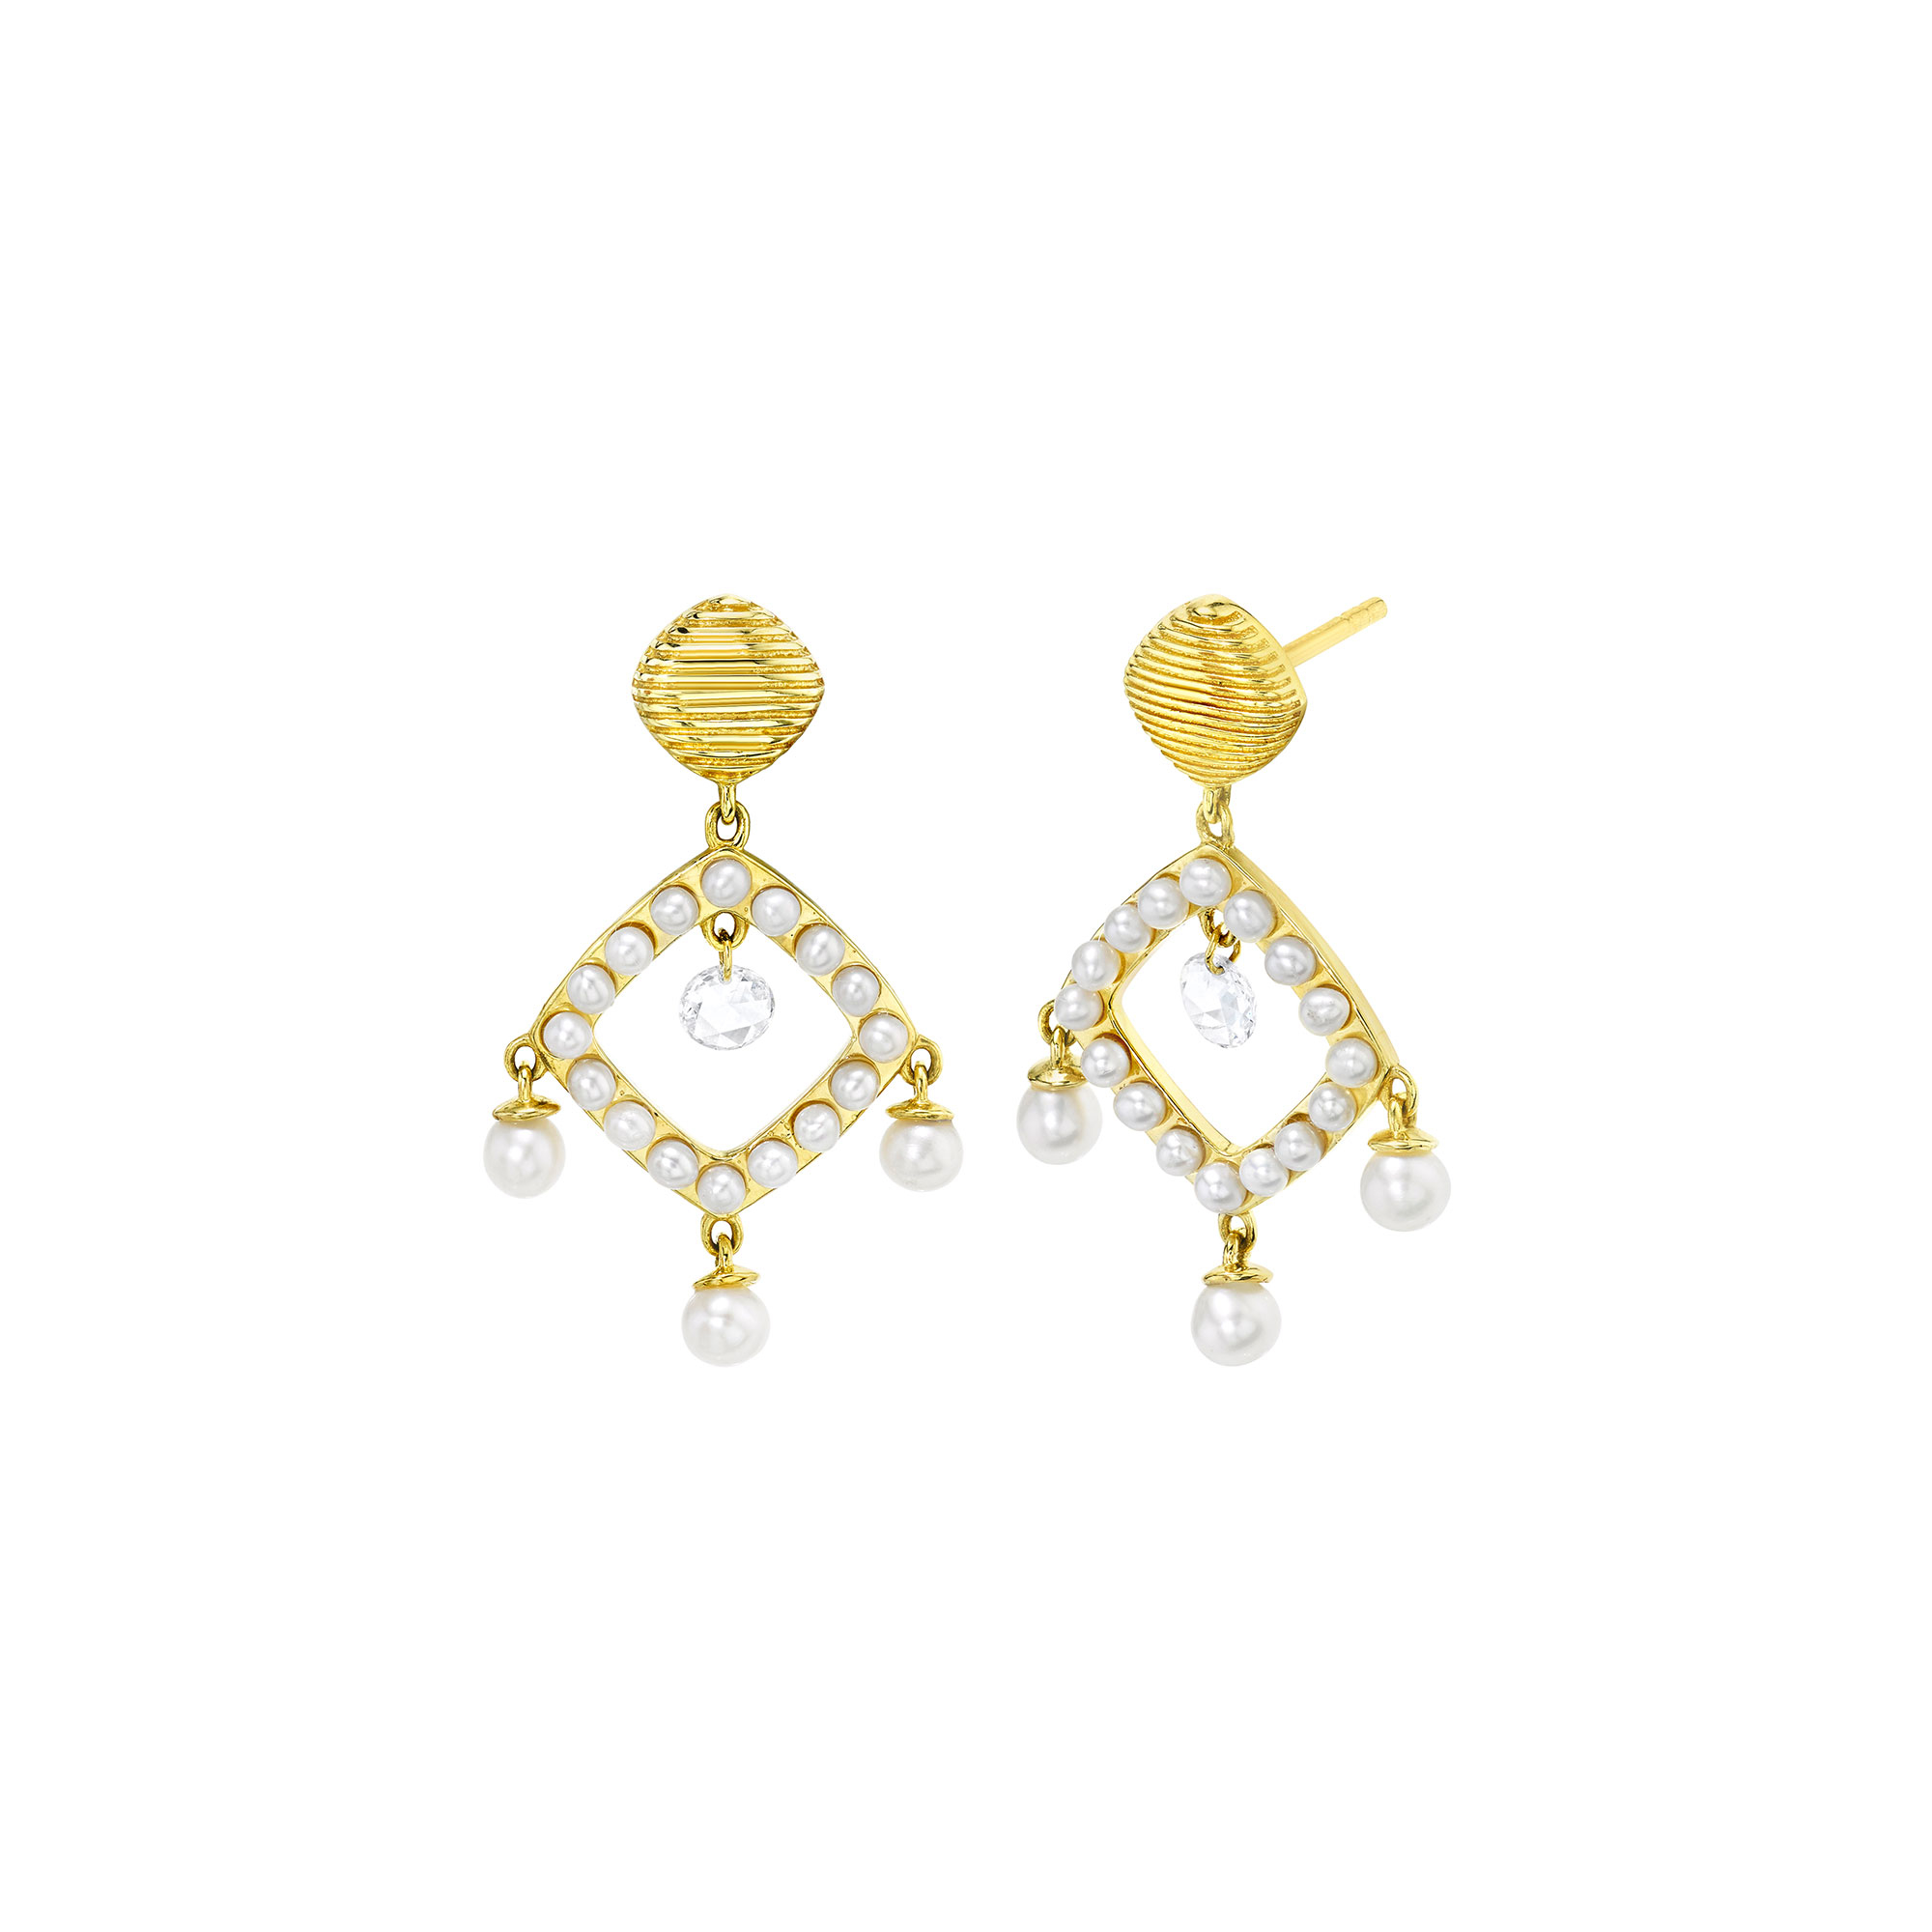 Sloane Street 18K Yellow Gold .22cts  Diamonds Gold Earrings with Stones E027F-WP-WD-Y